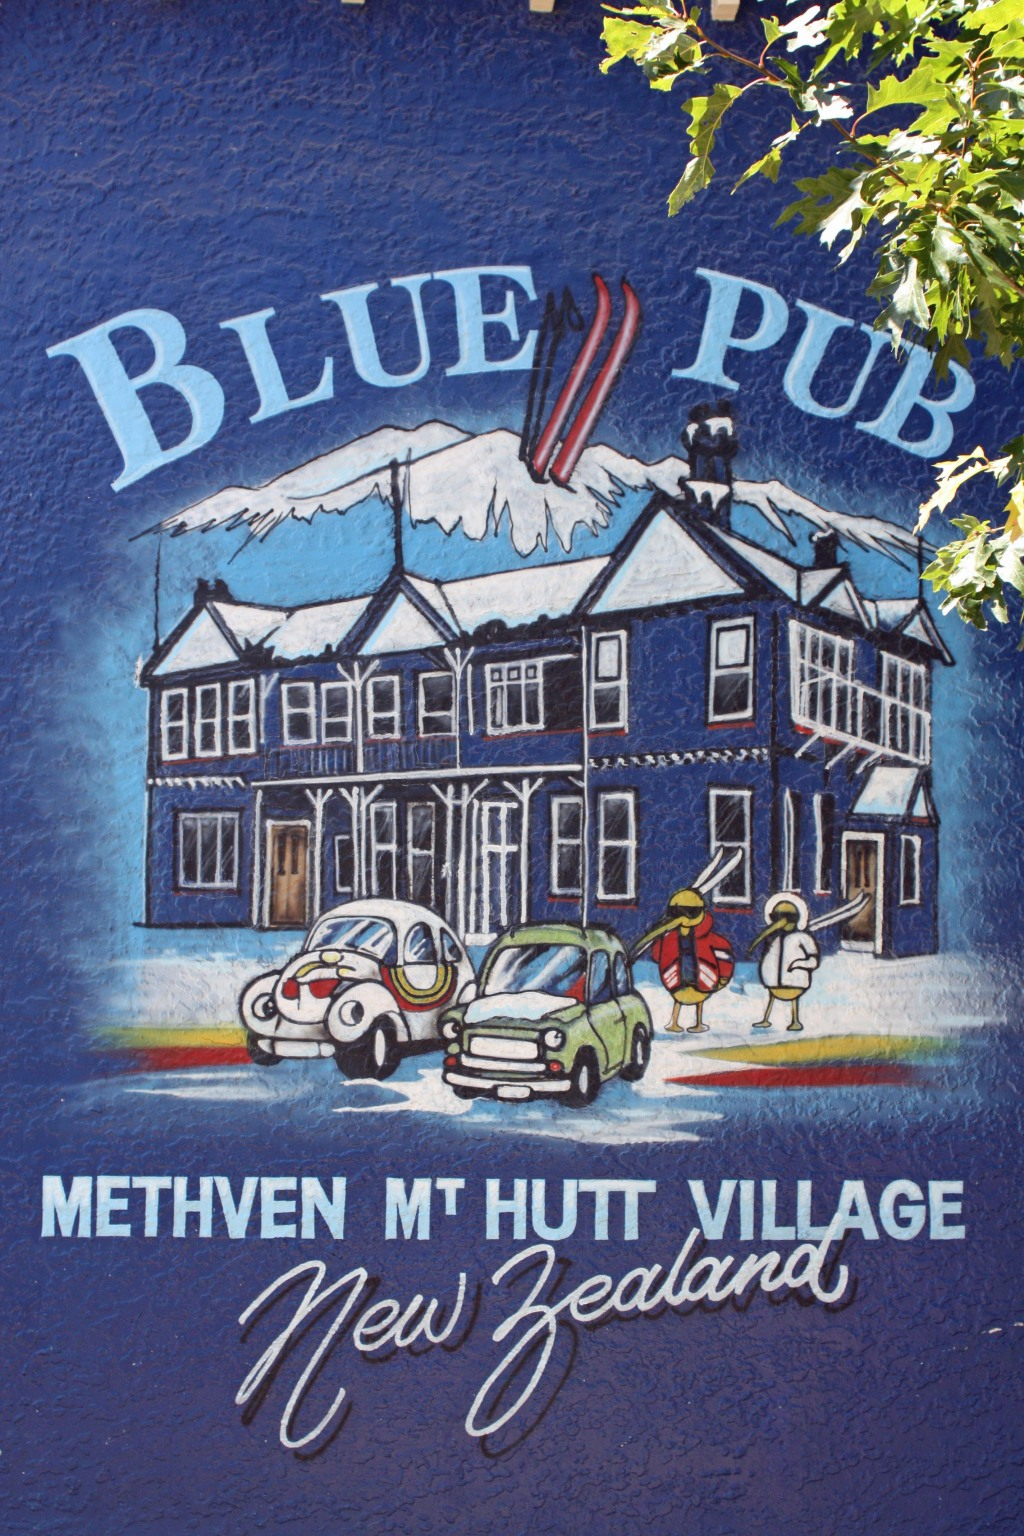 Blue Pub Inn ~ Methven, New Zealand